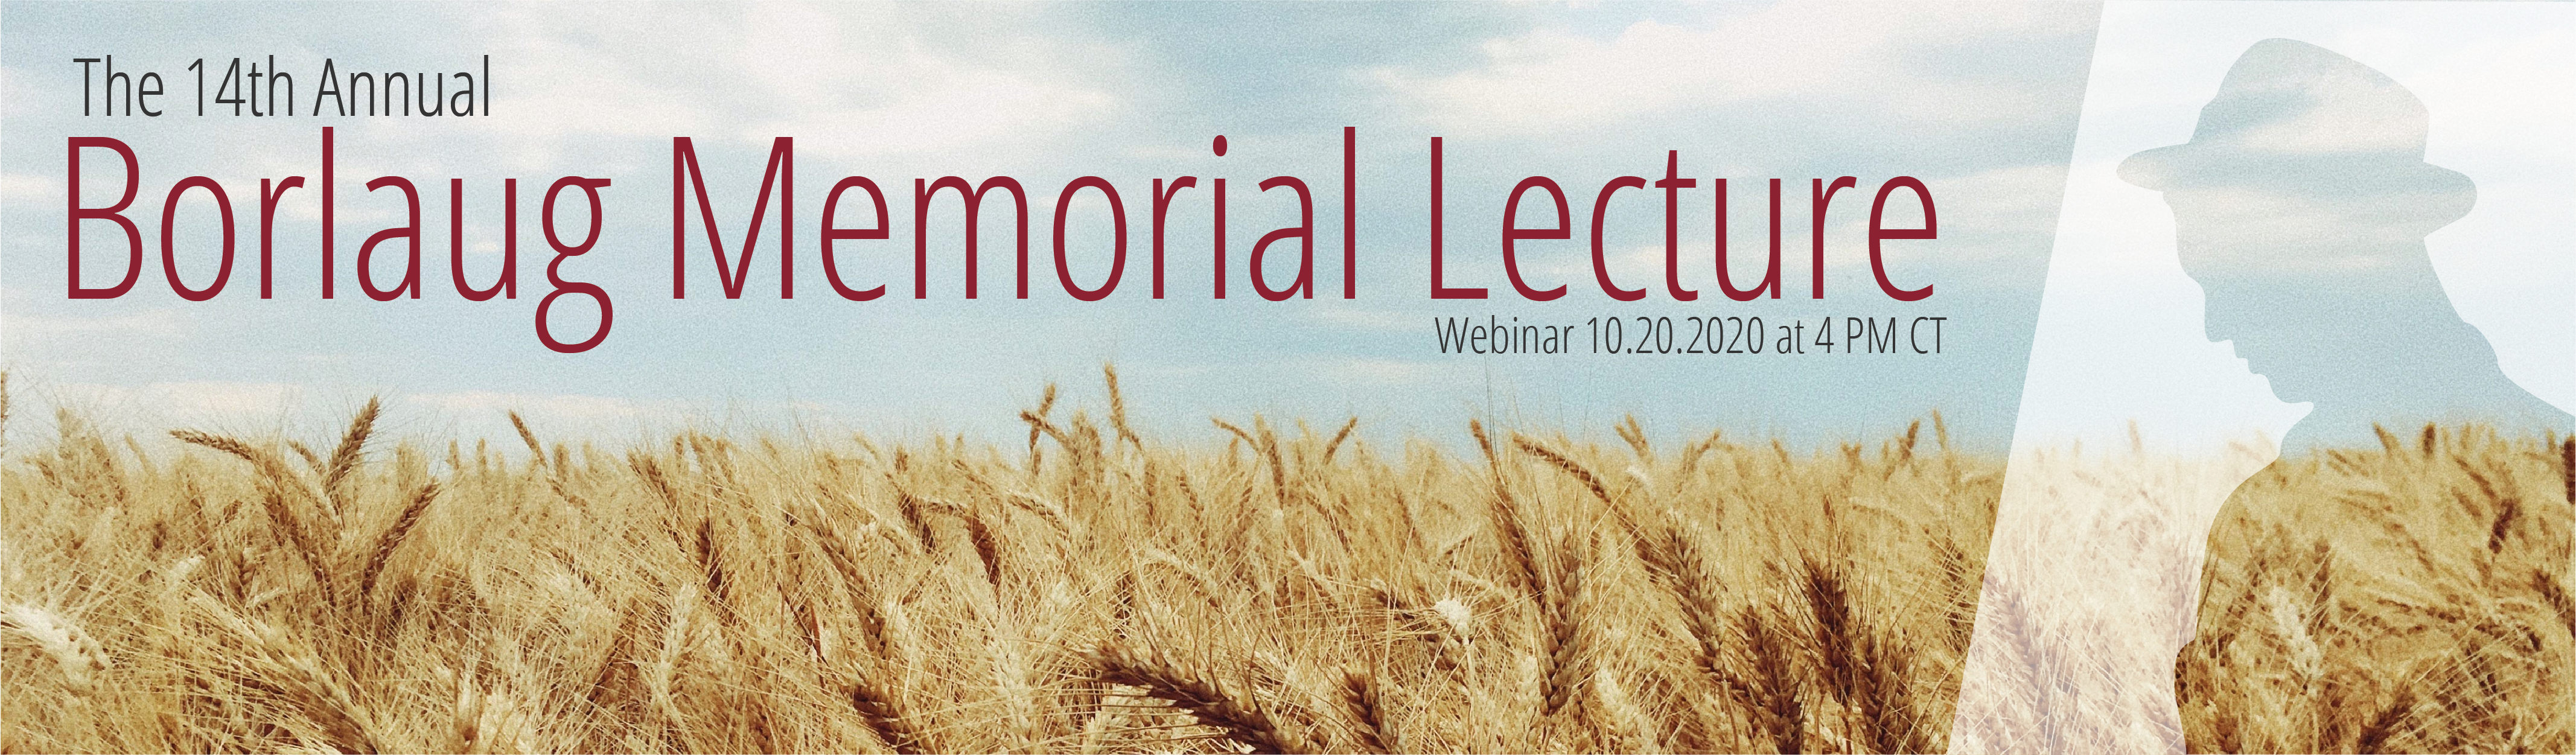 "Wheat field with text ""The 14th Annual Borlaug Memorial Lecture, Webinar October 20, 2020 at 4 PM central time"""